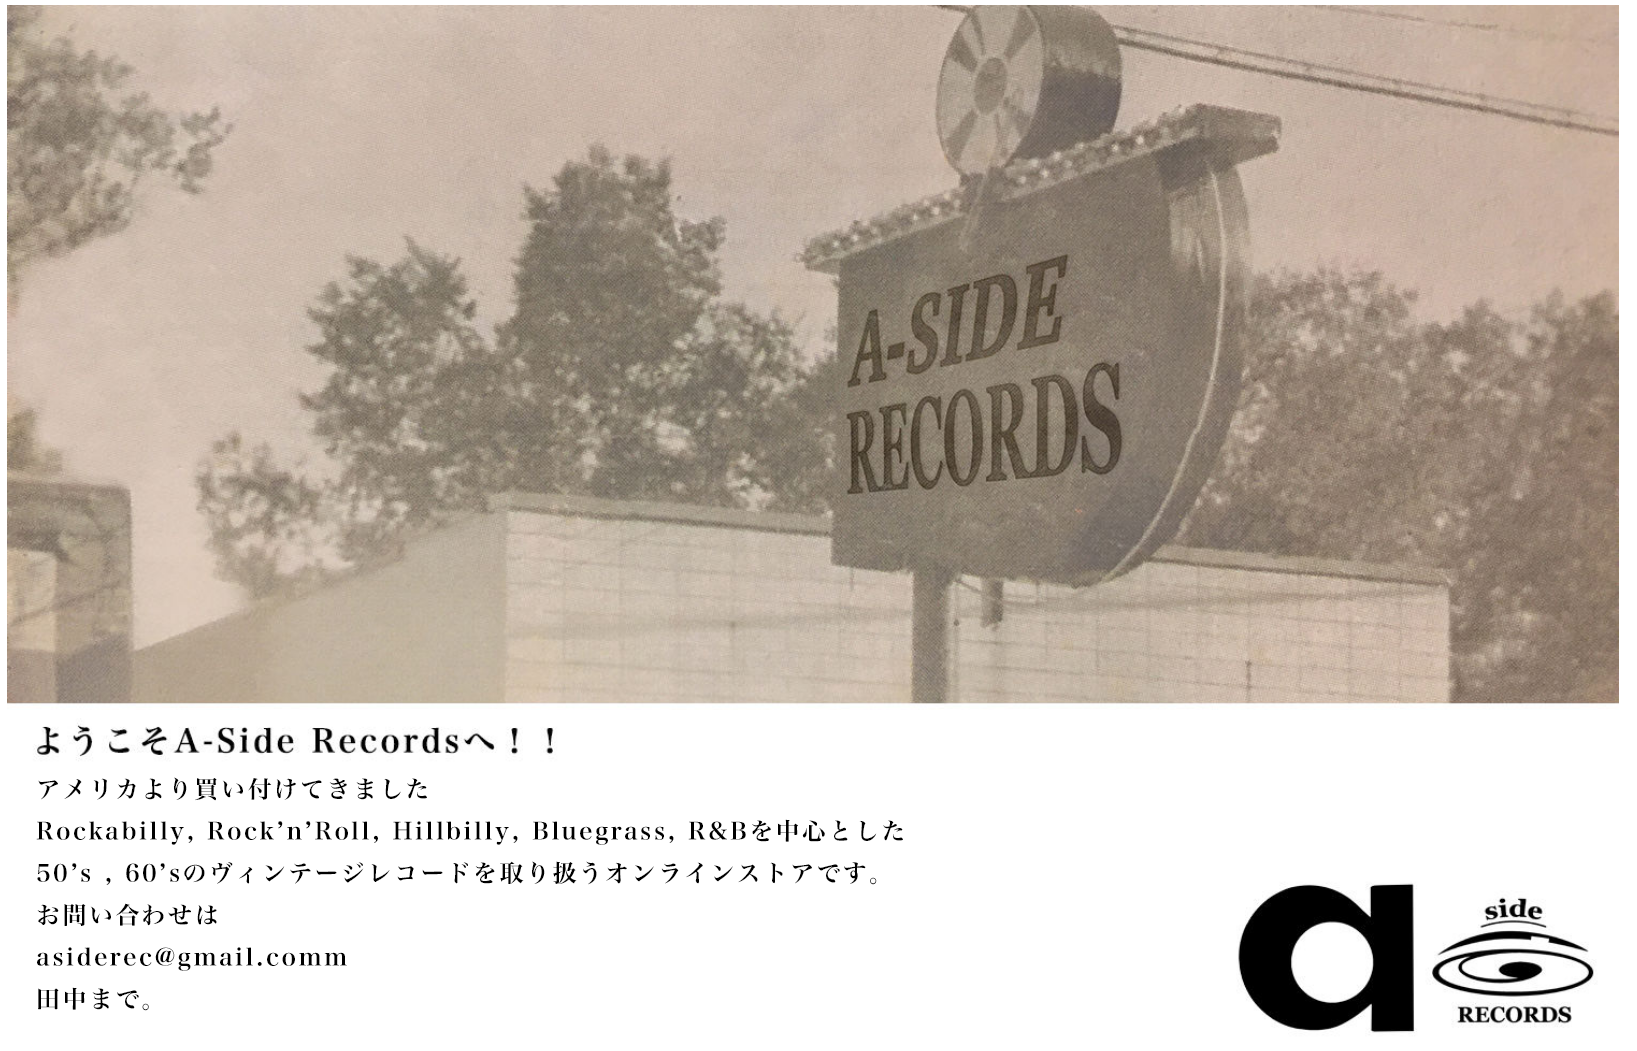 A-SIDE RECORDS